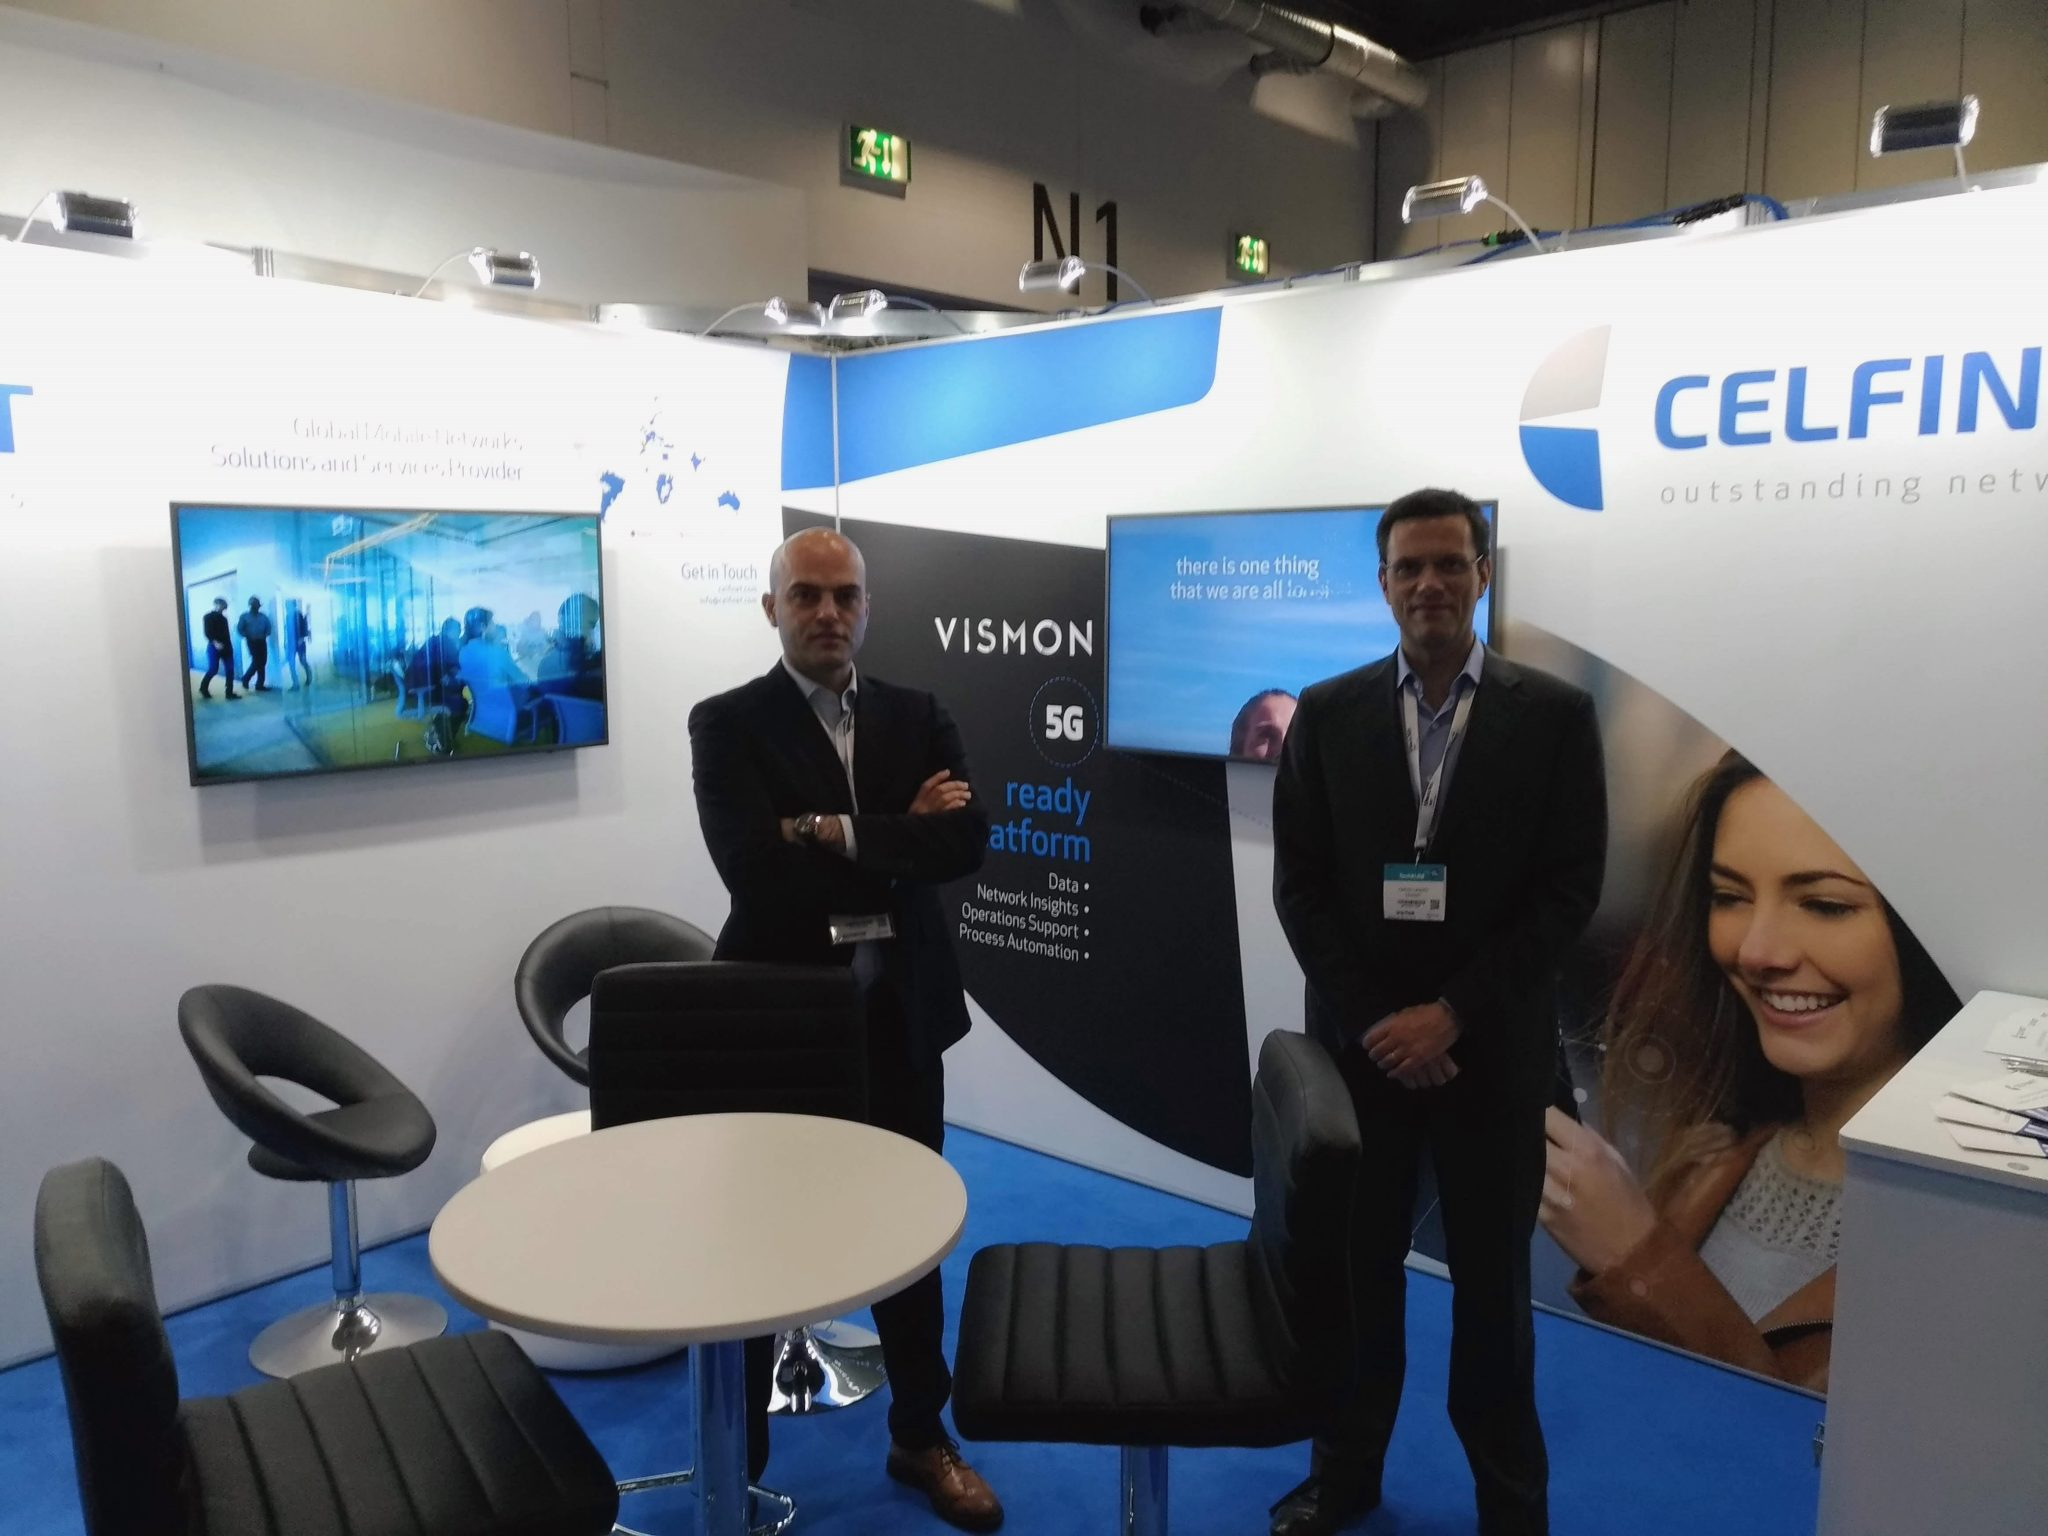 Celfinet's 5G-ready platform VISMON at TechXLR8 in London